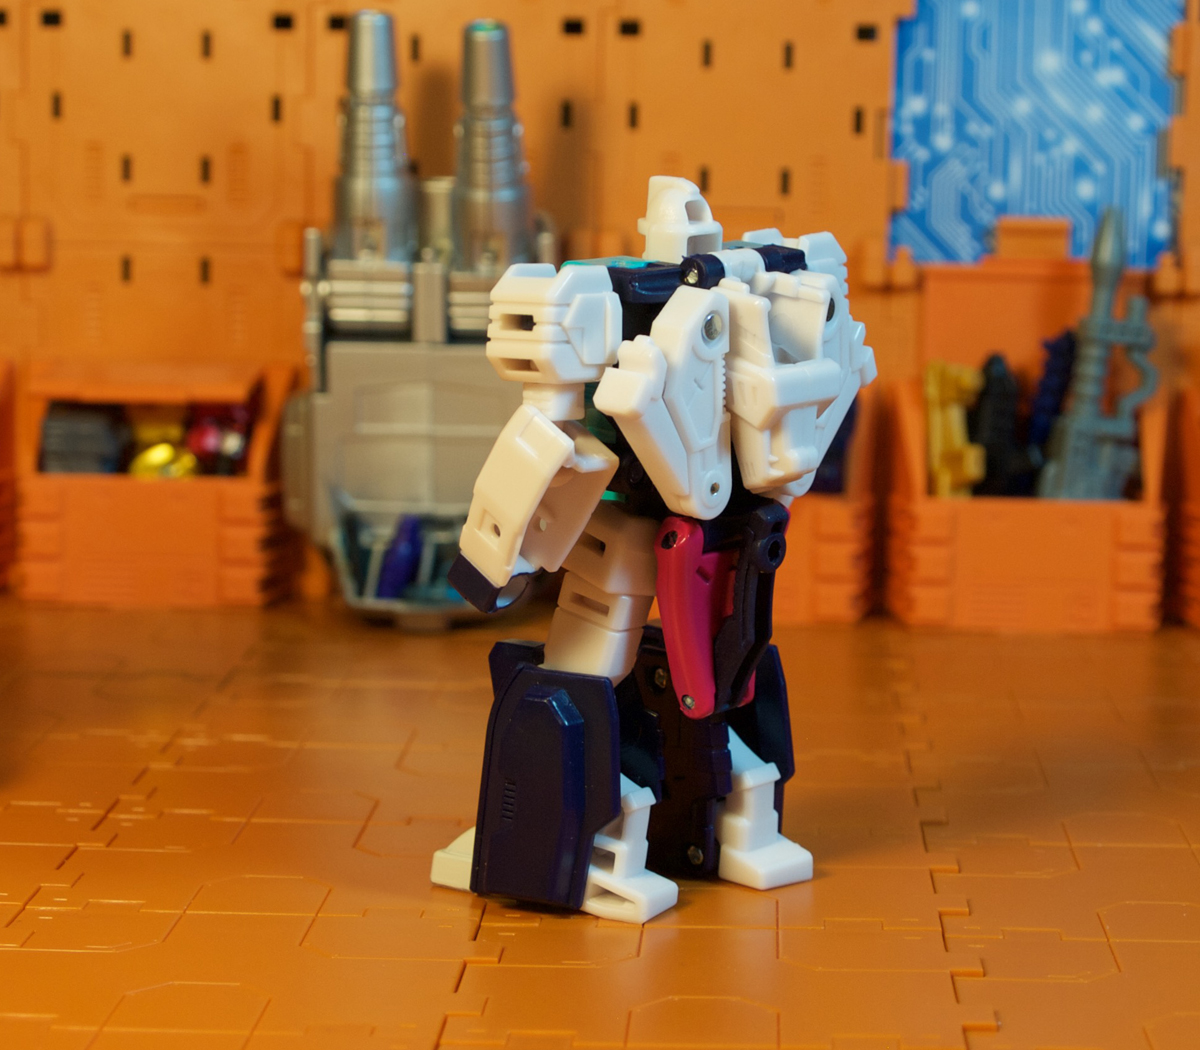 Pounce robot mode - suit tails